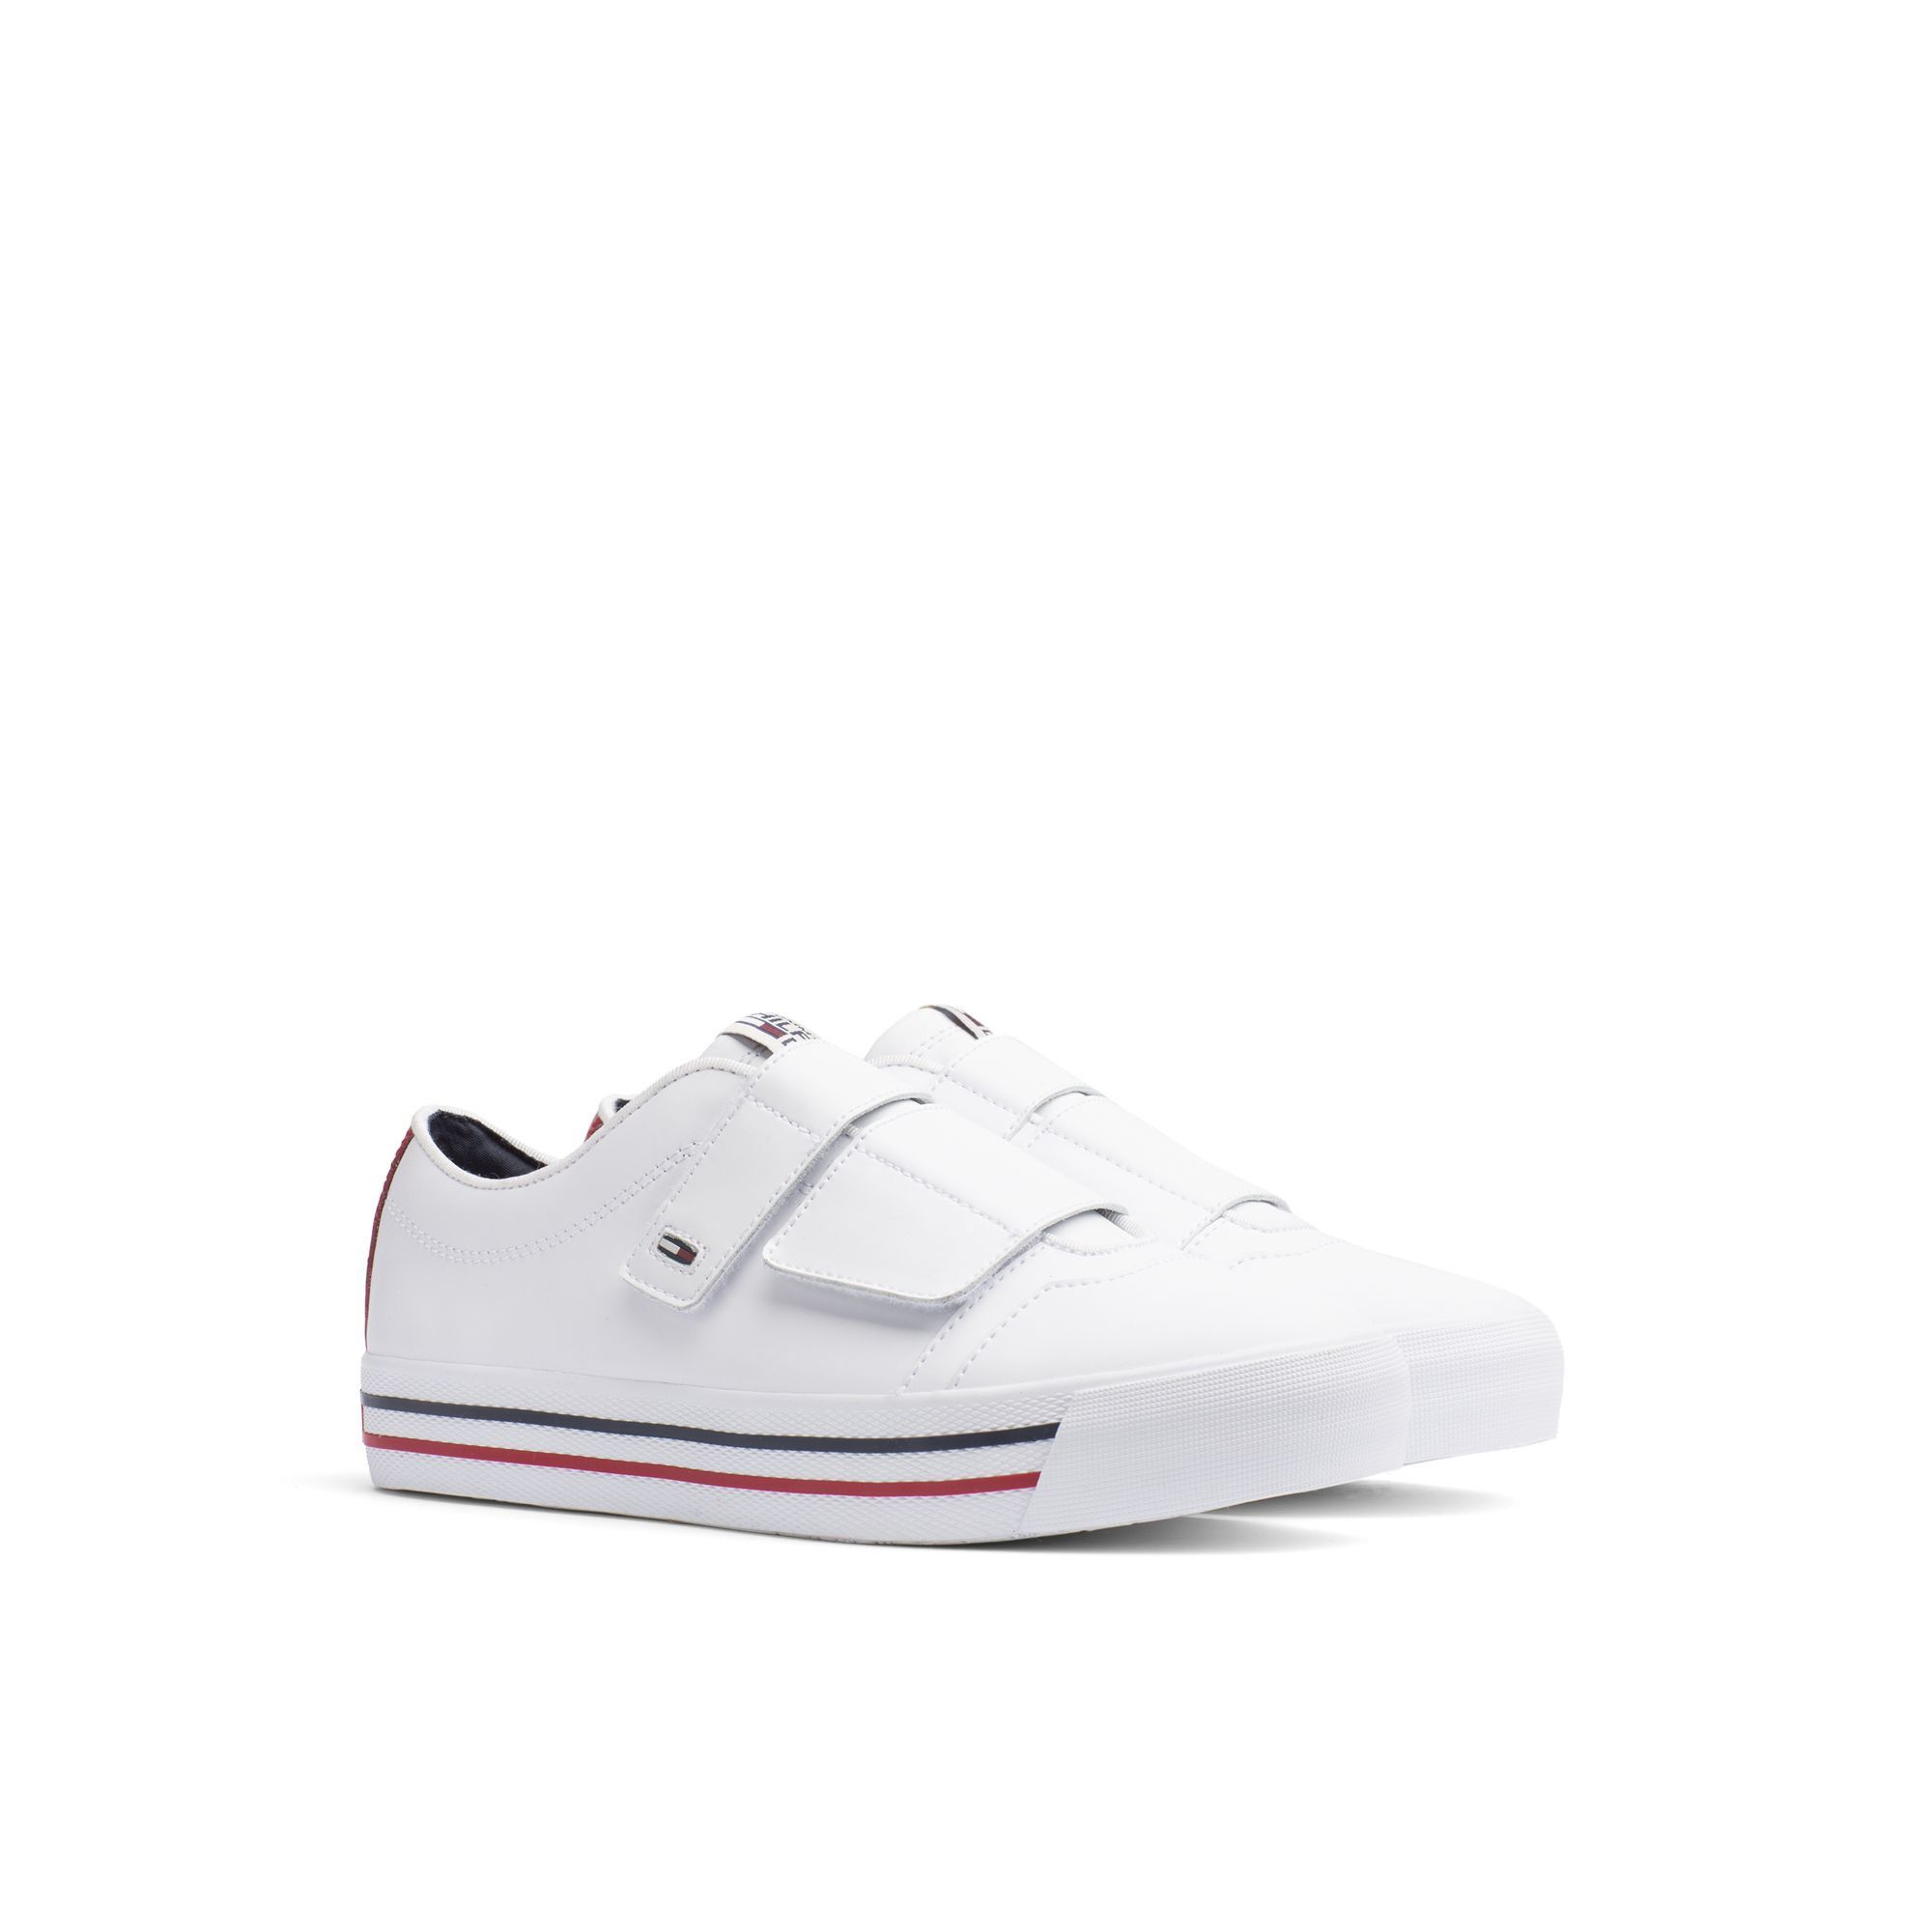 580b4cd115da TOMMY HILFIGER VELCRO SNEAKER - WHITE.  tommyhilfiger  shoes ...